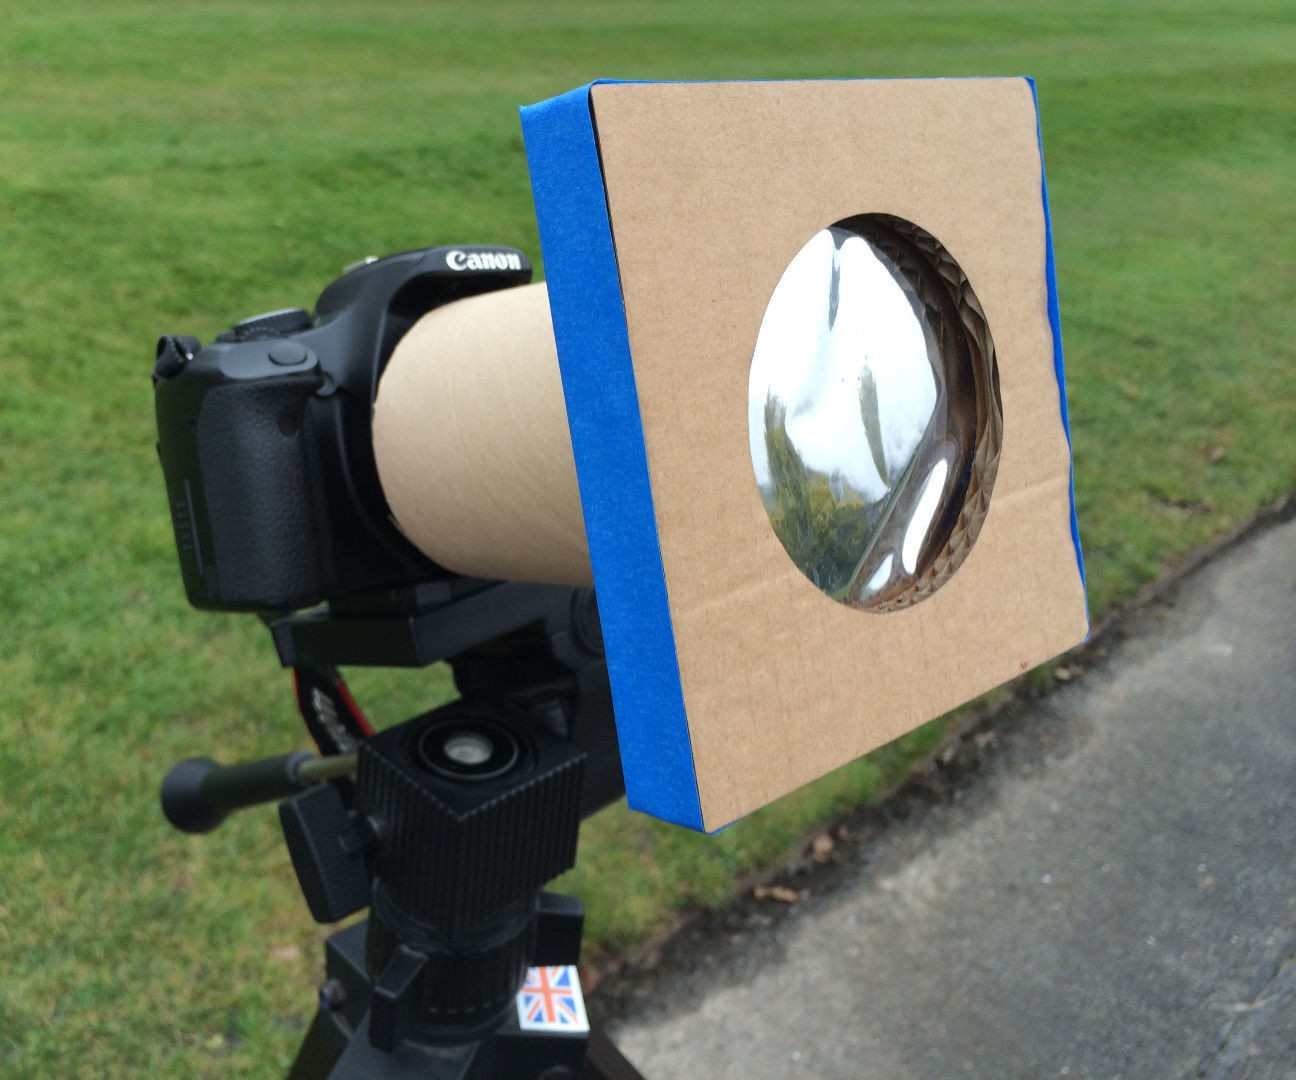 Best ideas about Solar Eclipse DIY Glasses . Save or Pin DIY Solar Eclipse Viewers 2 Now.